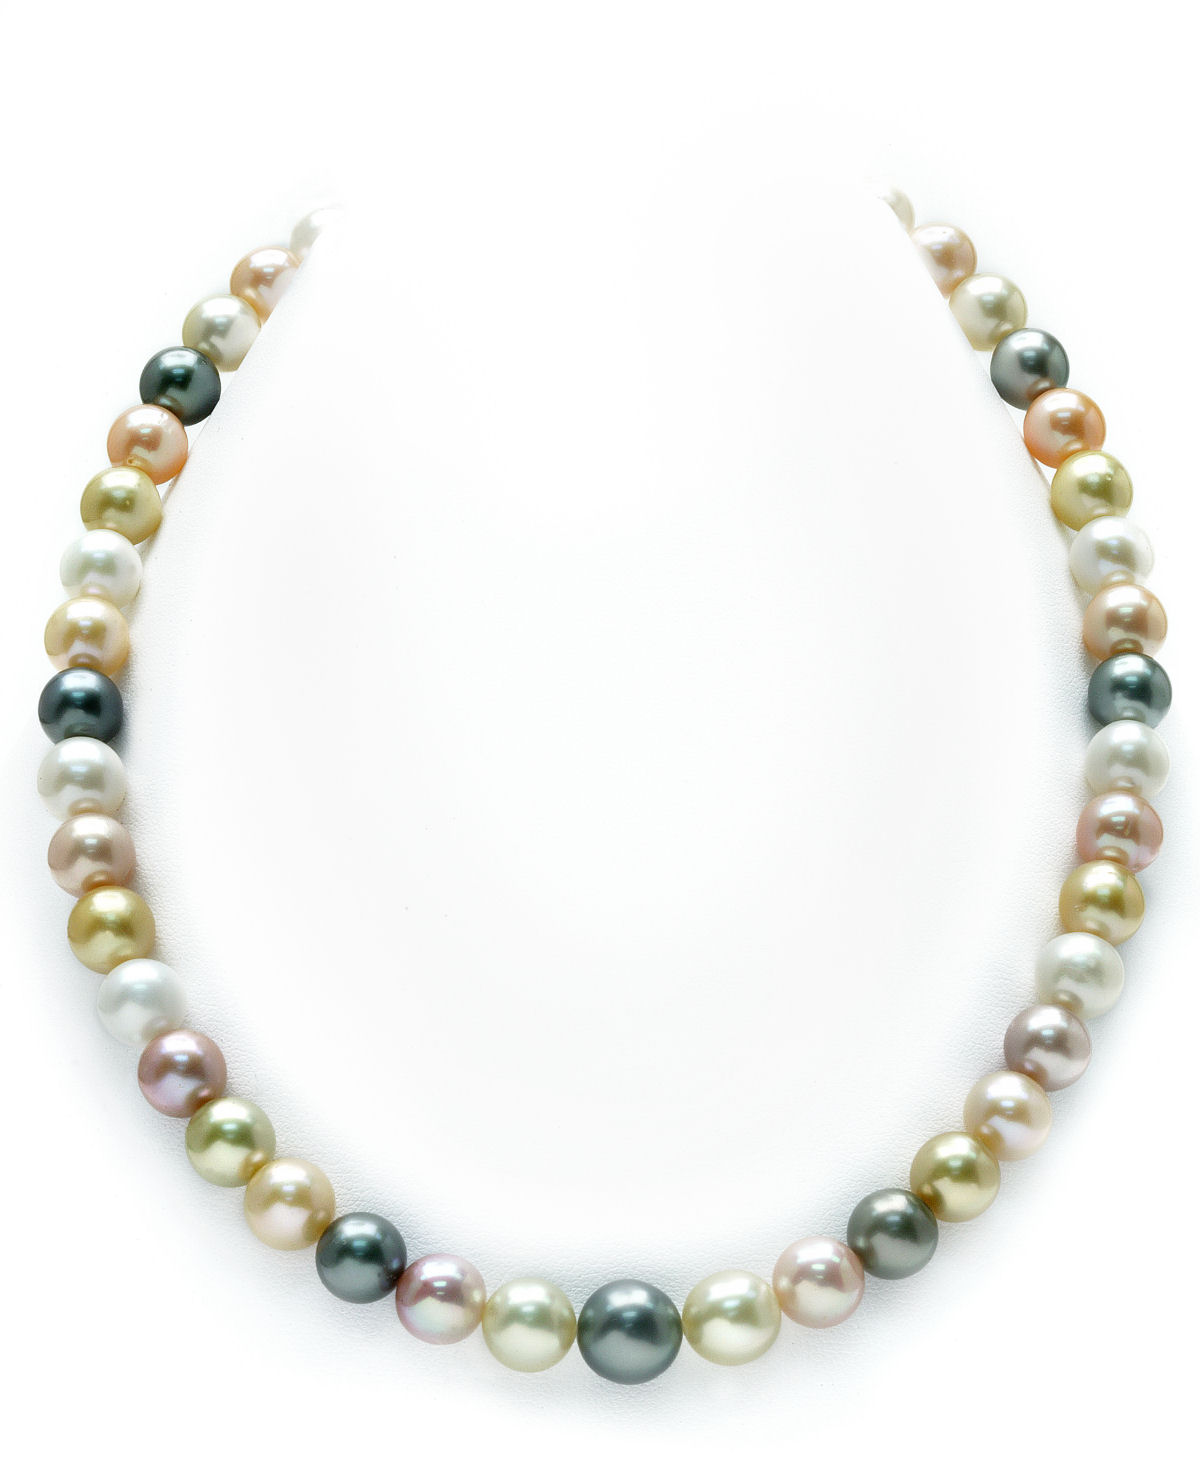 8-10mm South Sea & Freshwater Multicolor Pastel Pearl Necklace